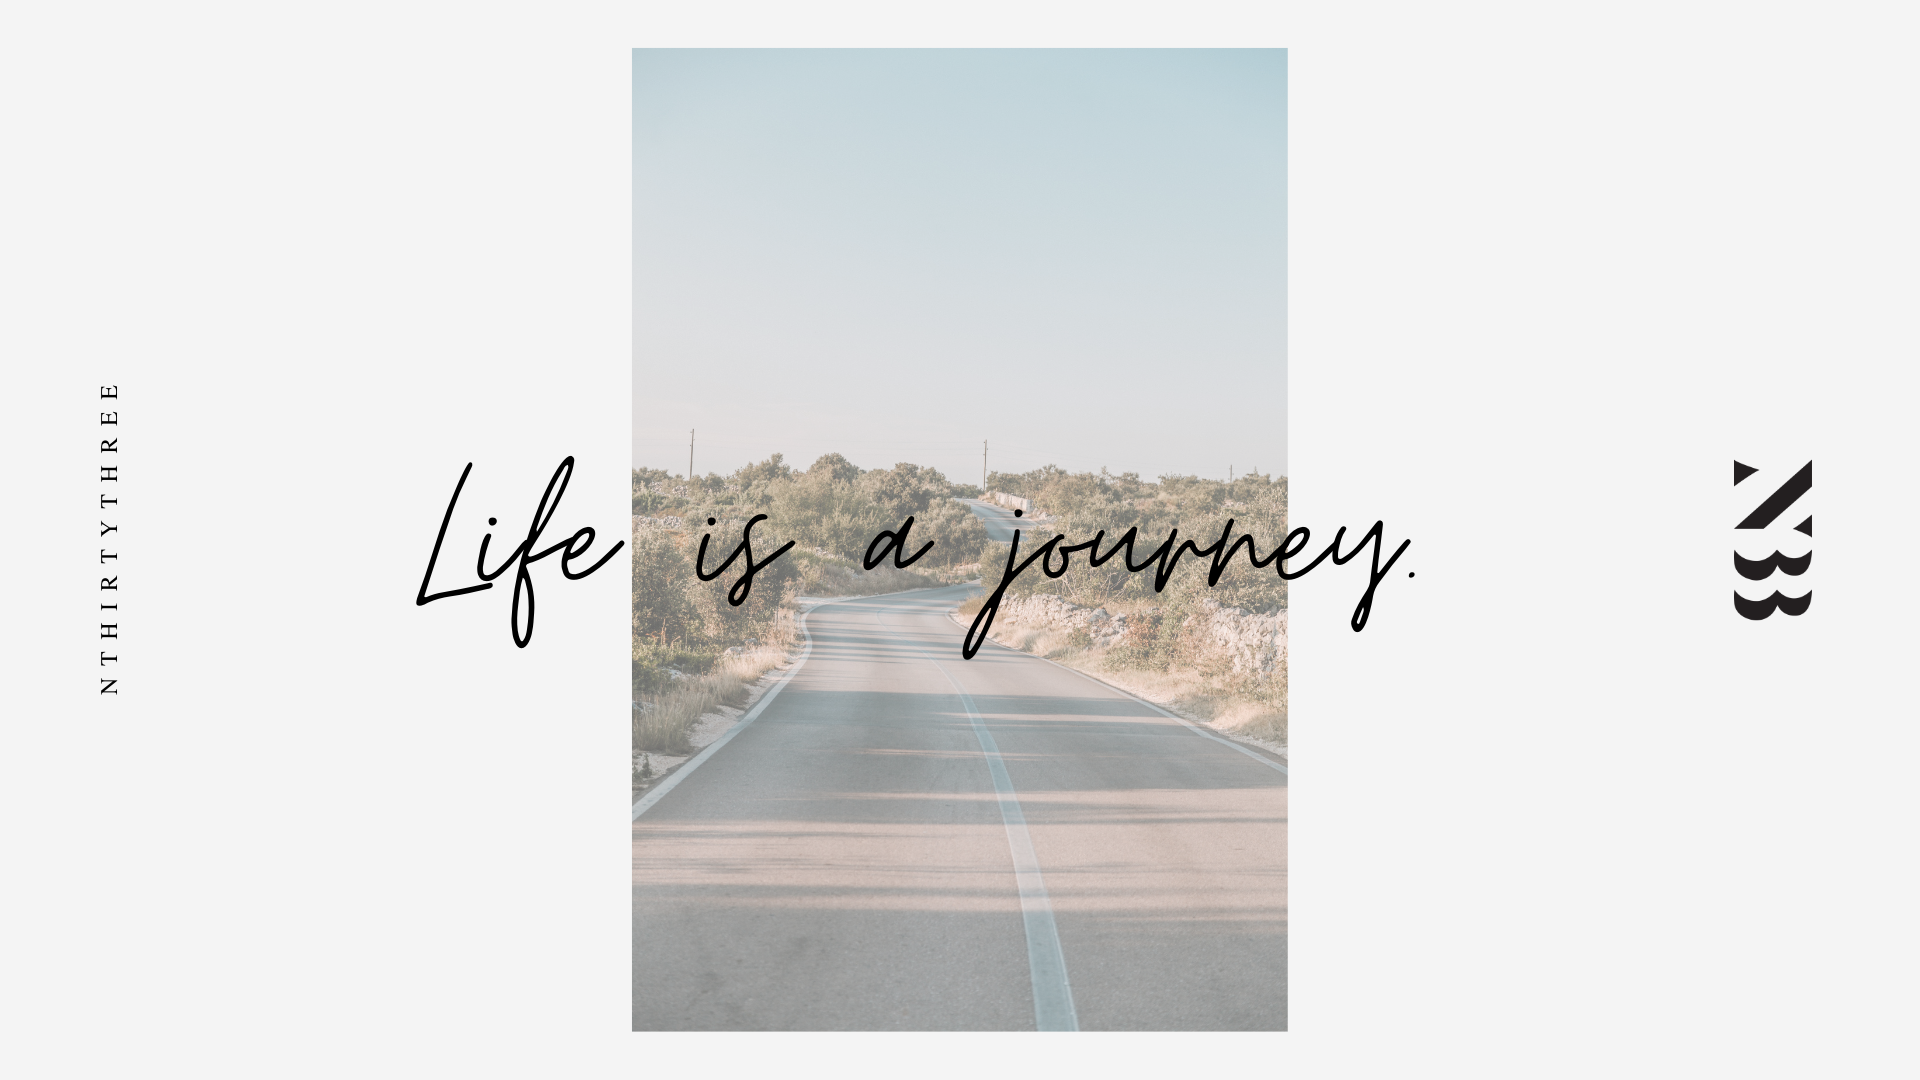 Life is a journey. #NTHIRTYTHREE